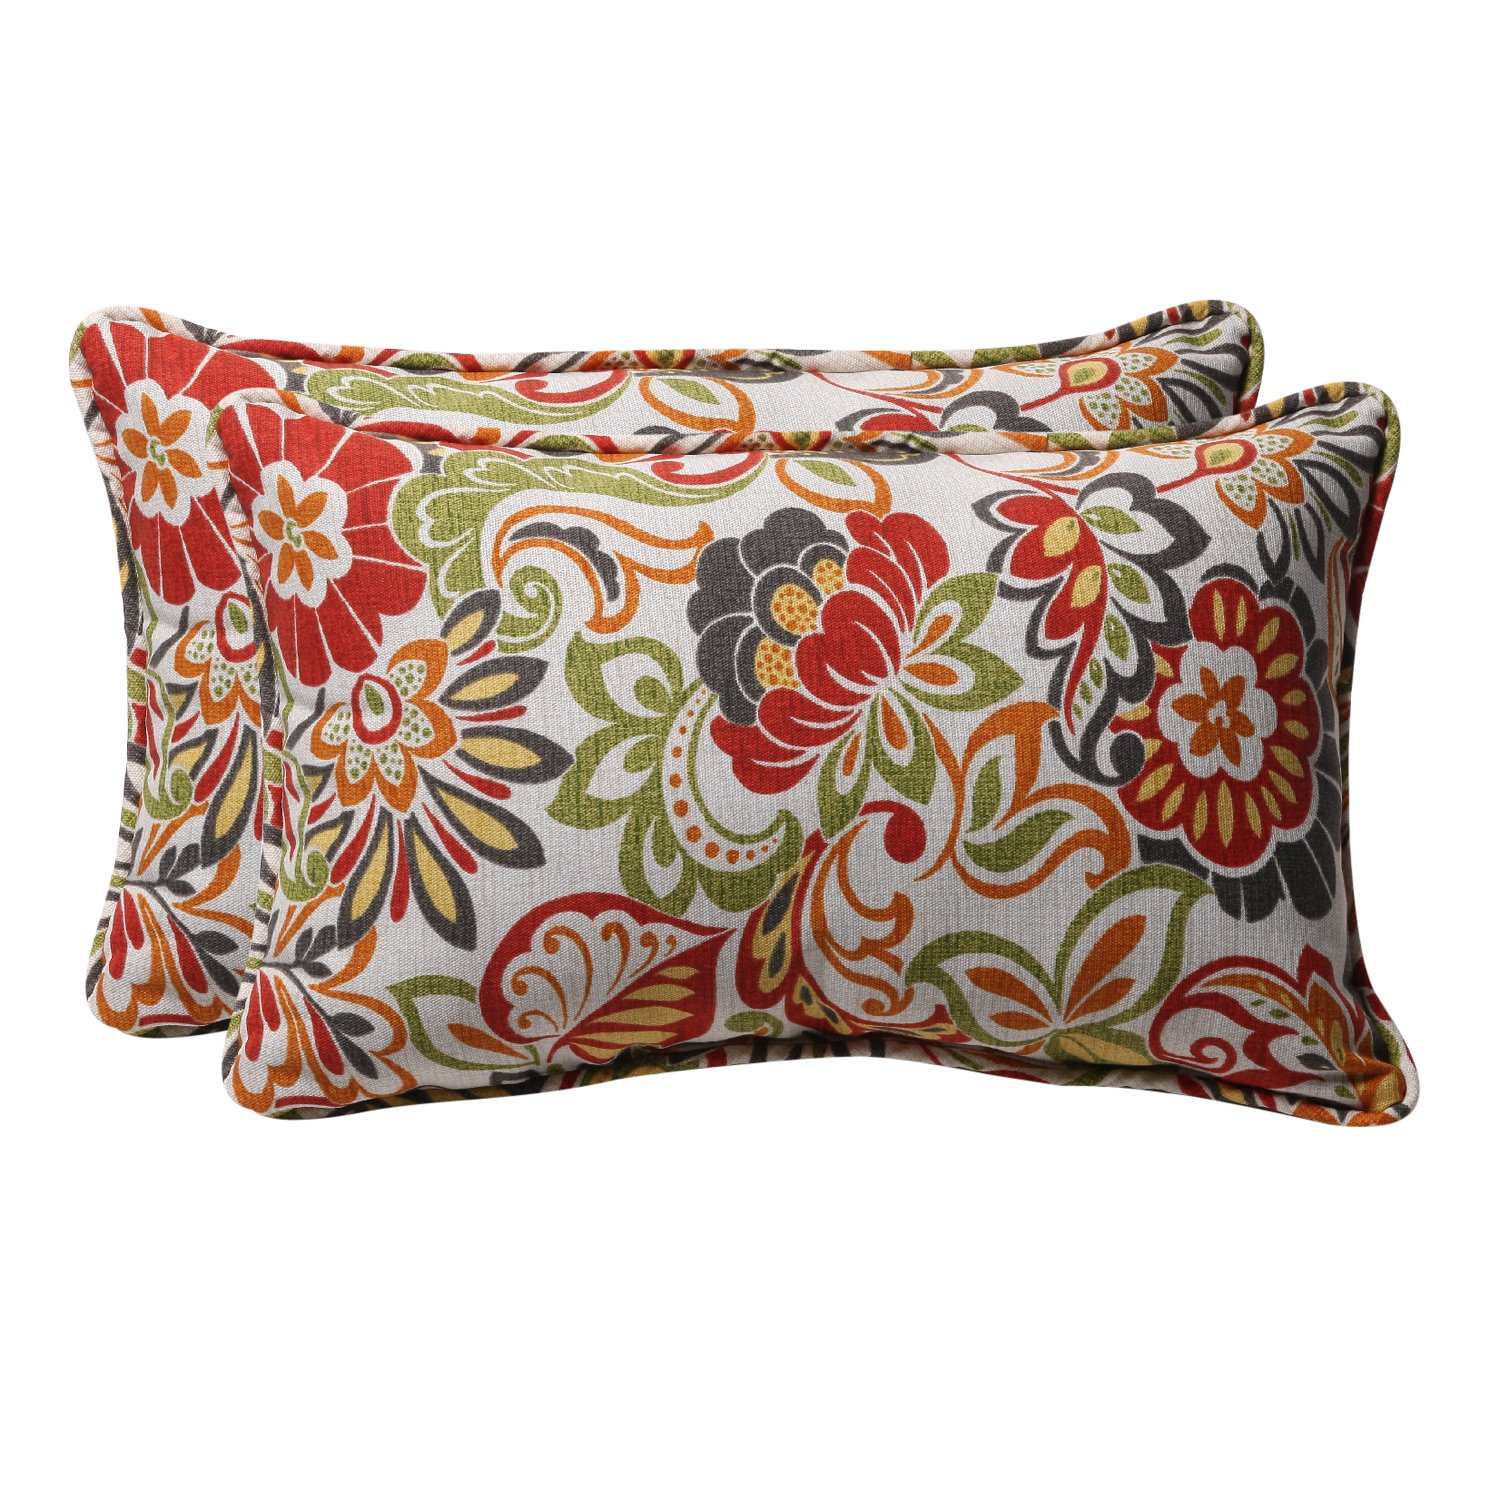 Amazon.com: Accent - Pillows / Decorative Pillows, Inserts